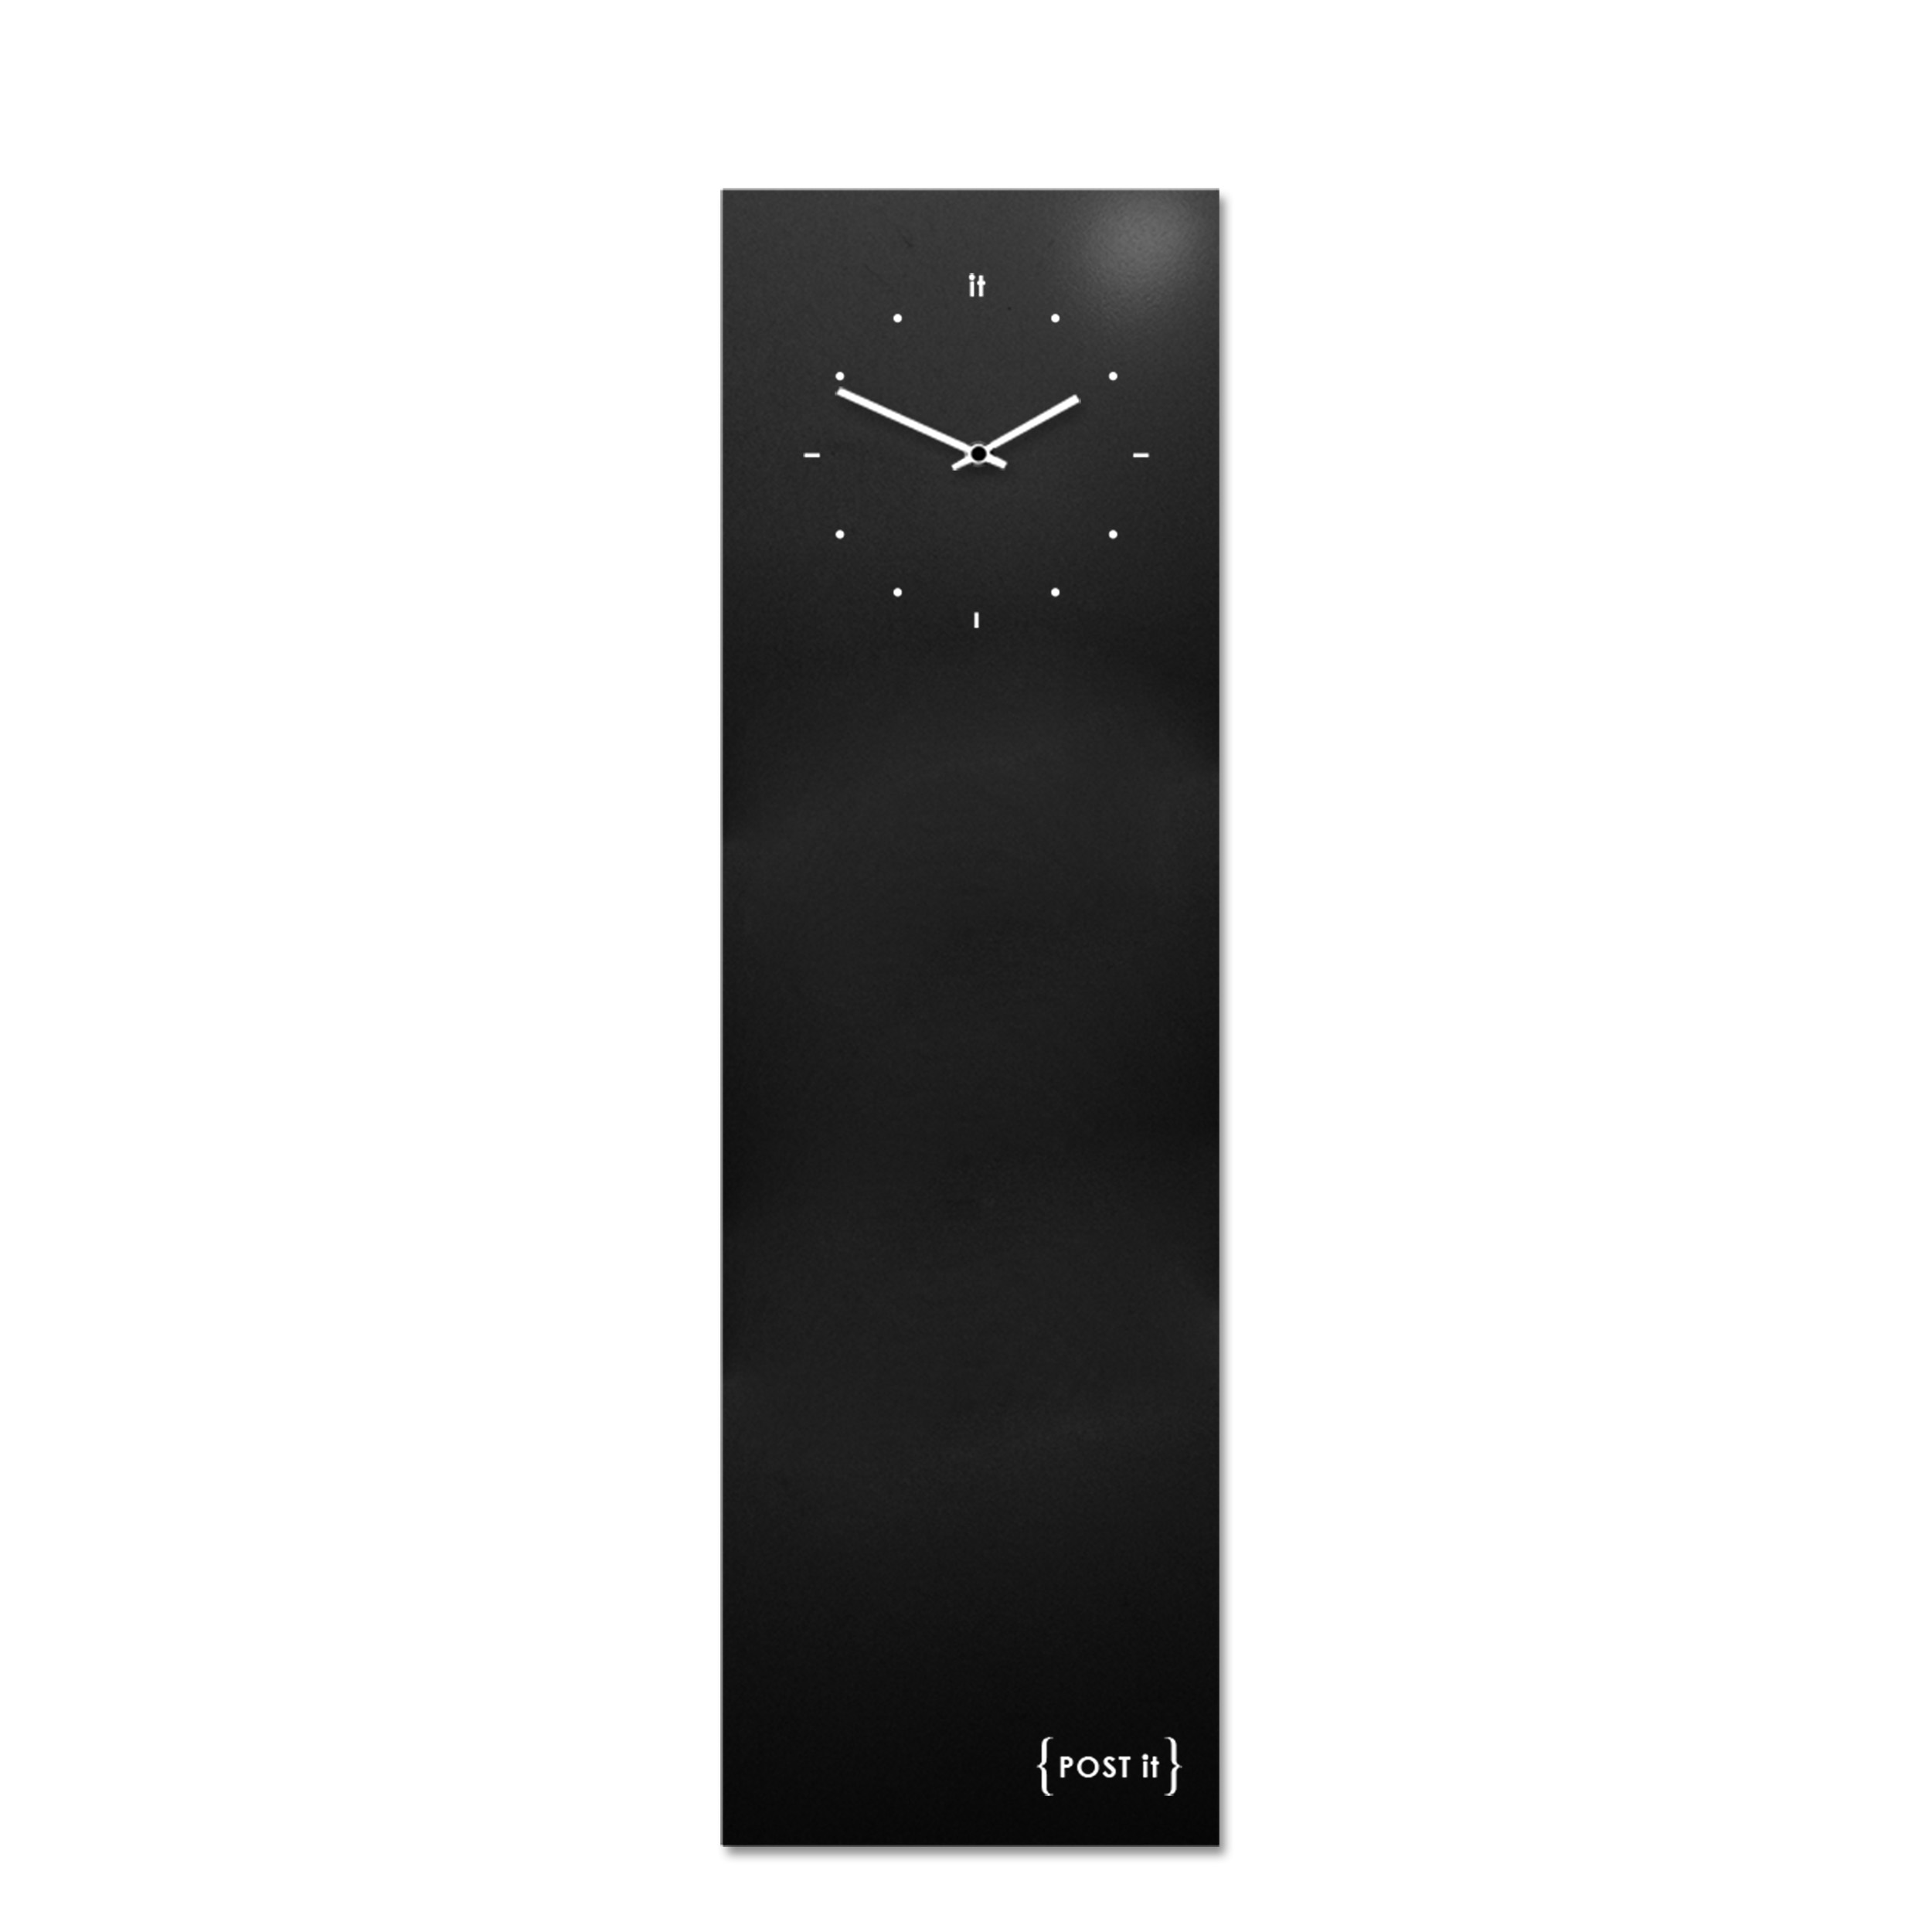 design-clock-magnetic-board-orologio-lavagna-magnetica-post it-black-vertical